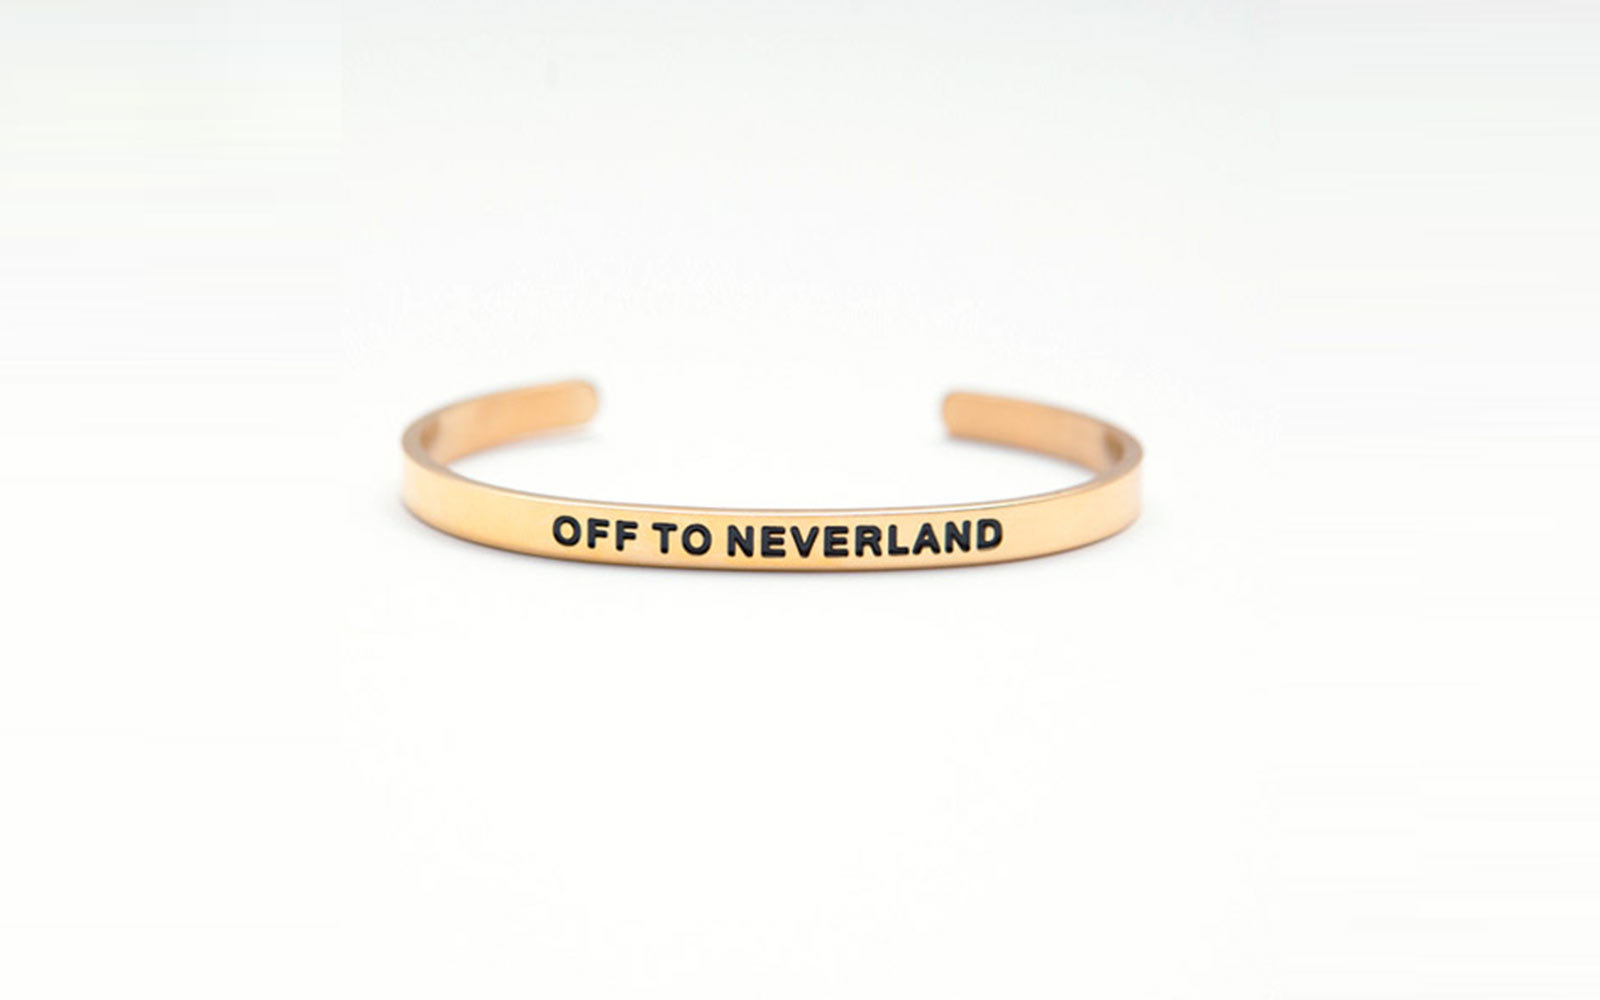 Off to Neverland bracelet